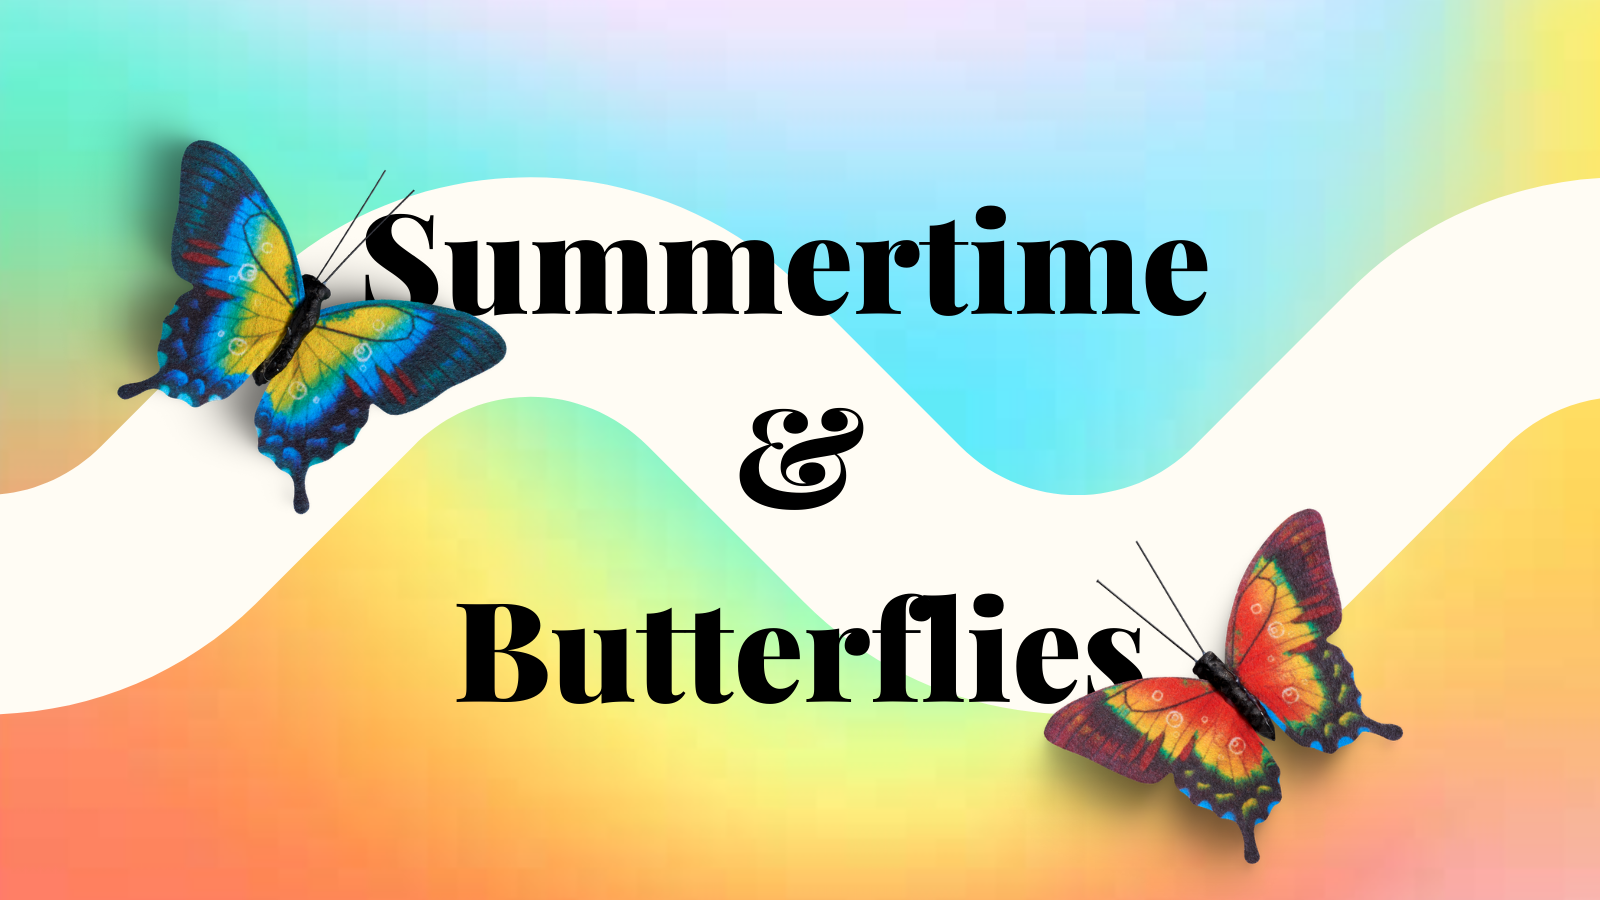 Summertime-and-Butterflies-photography-challenge